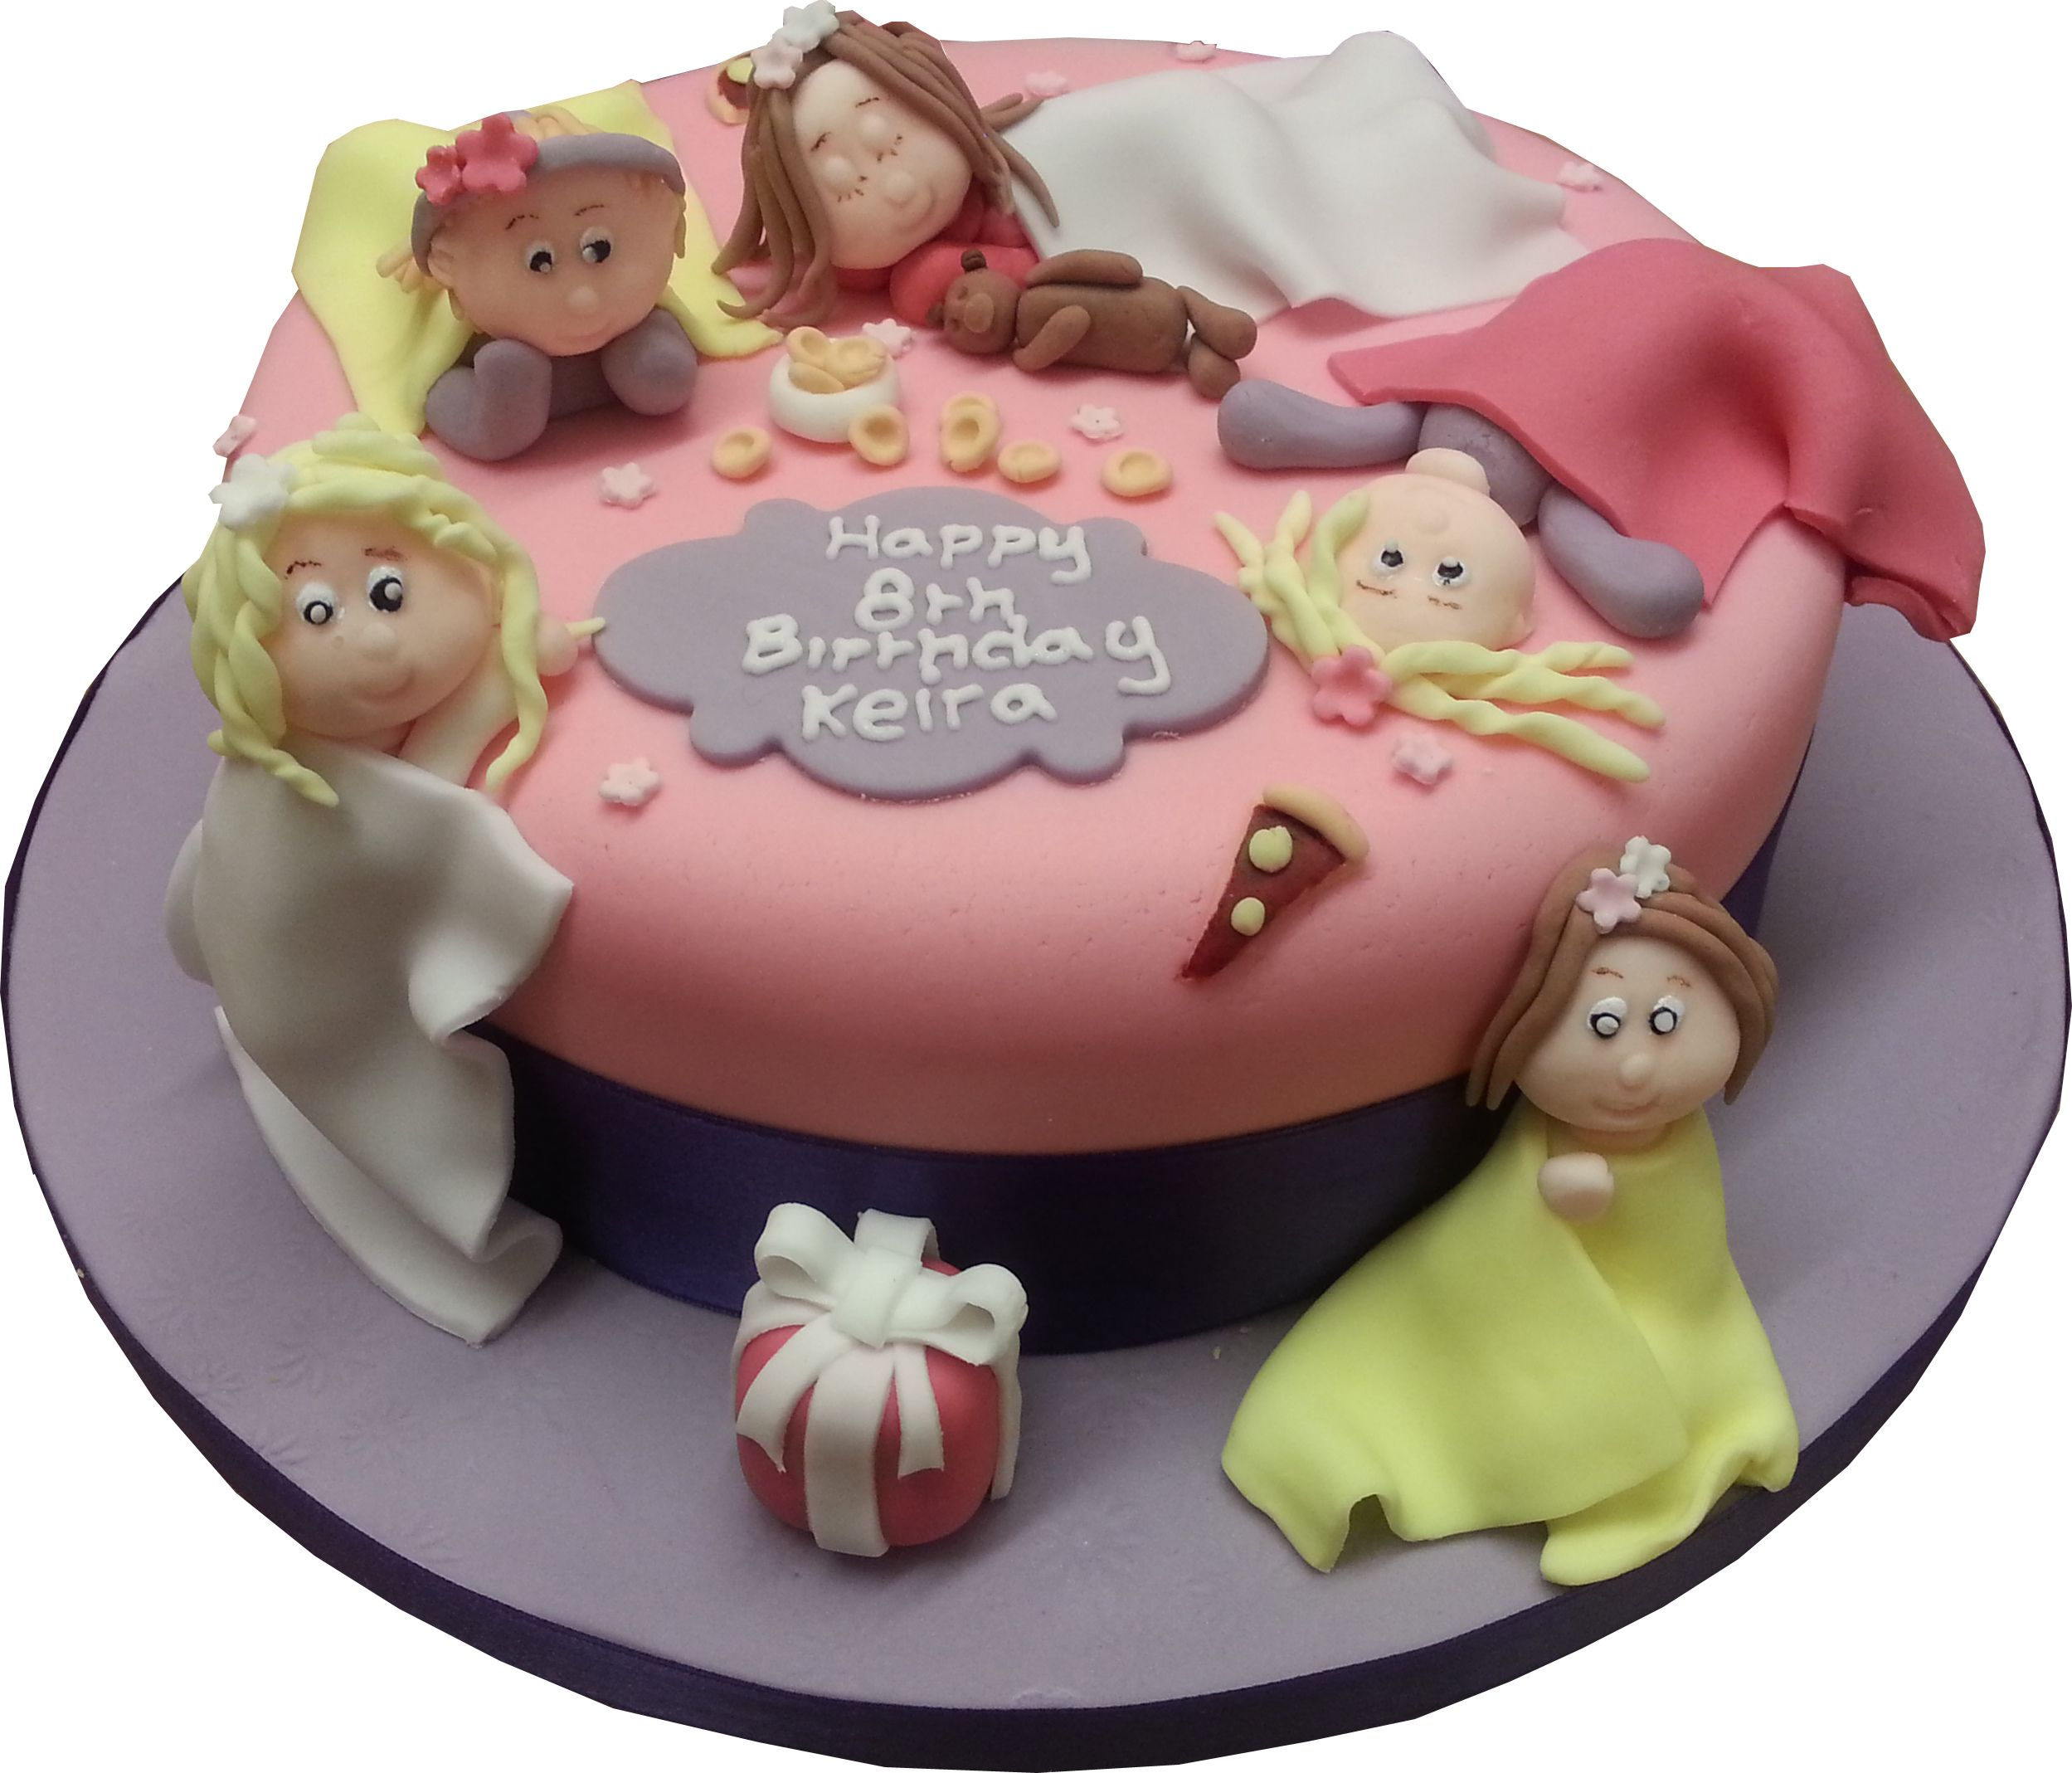 Sleepover Cake Starry Cakes Northampton Starry Design Studio